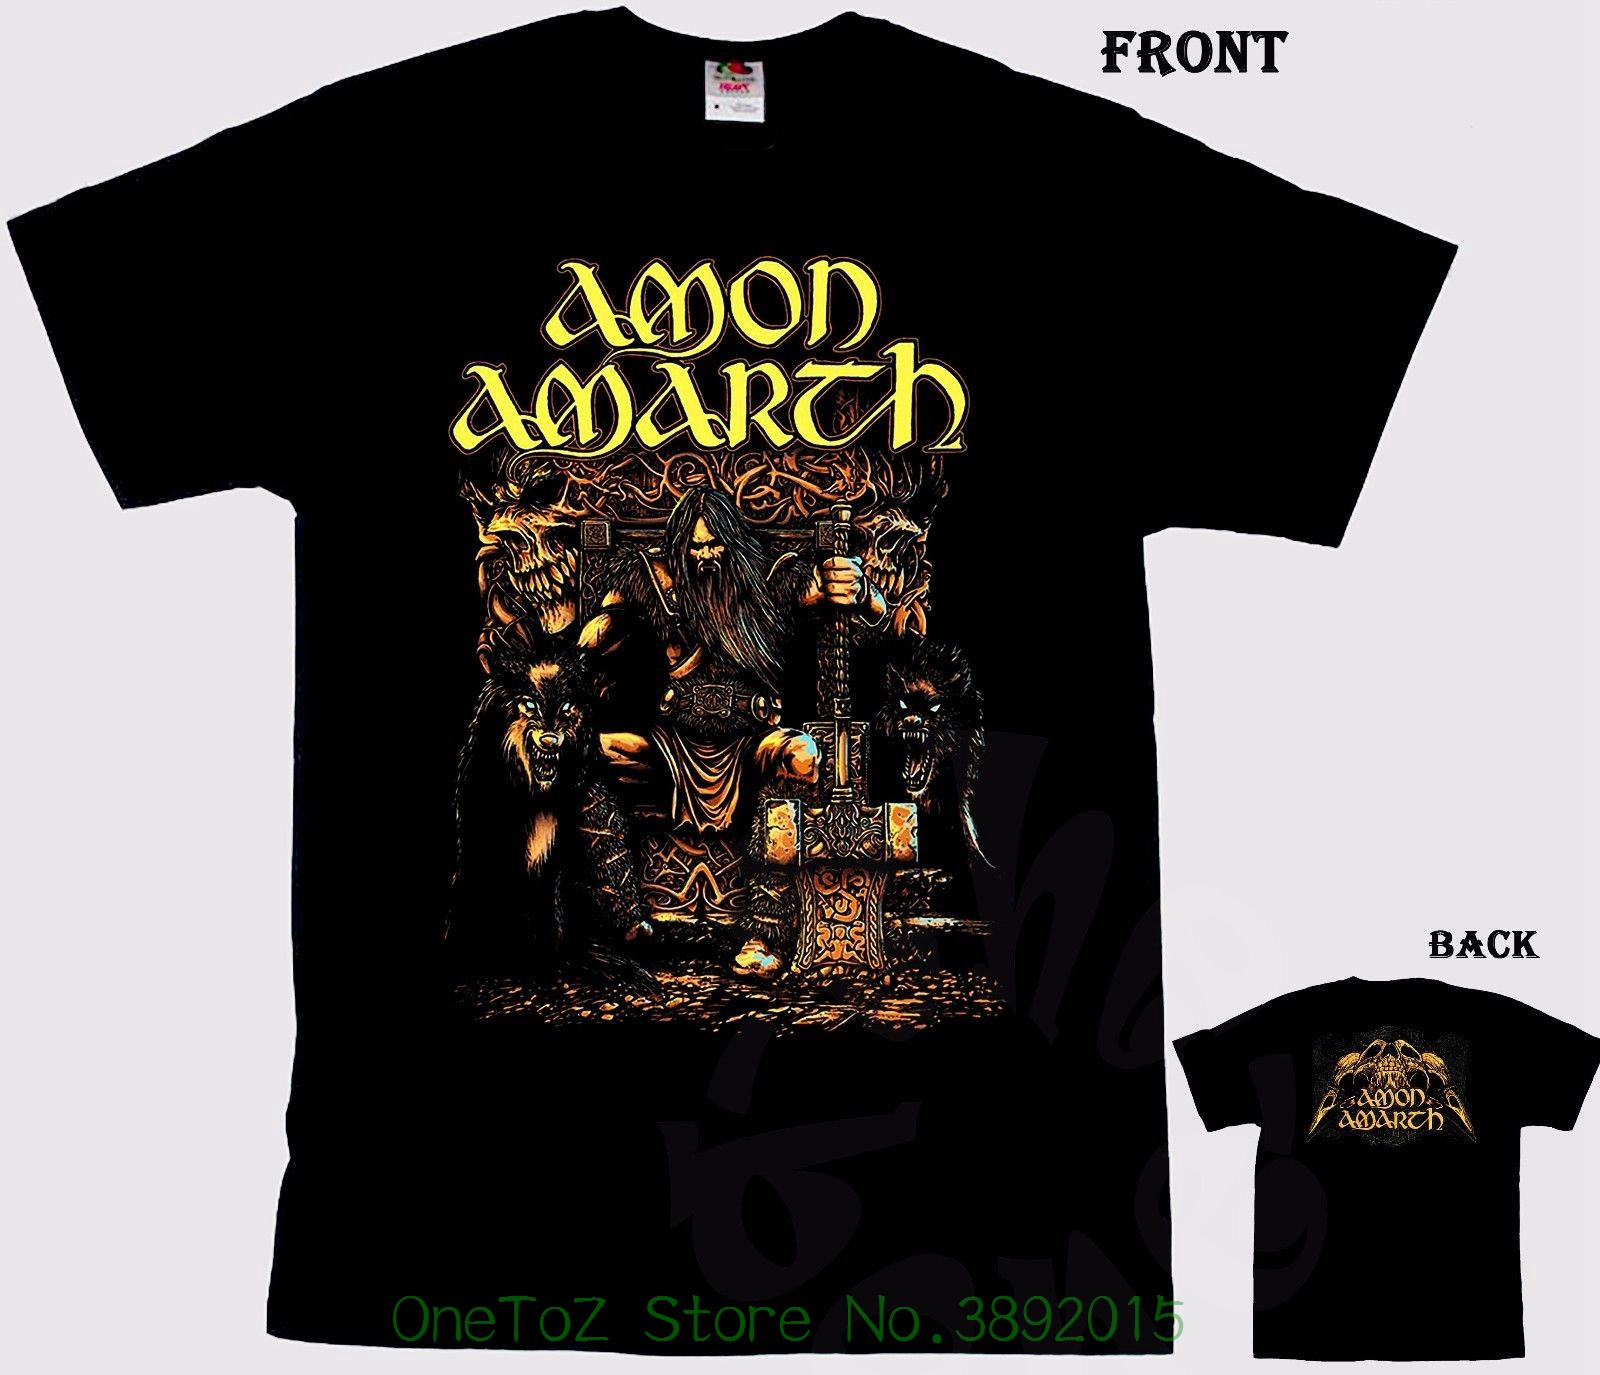 Print T Shirt Summer Style Hot Amon Amarth - Melodic Viking Death Metal Band , T-shirt - S Izes : S To 7xl ...